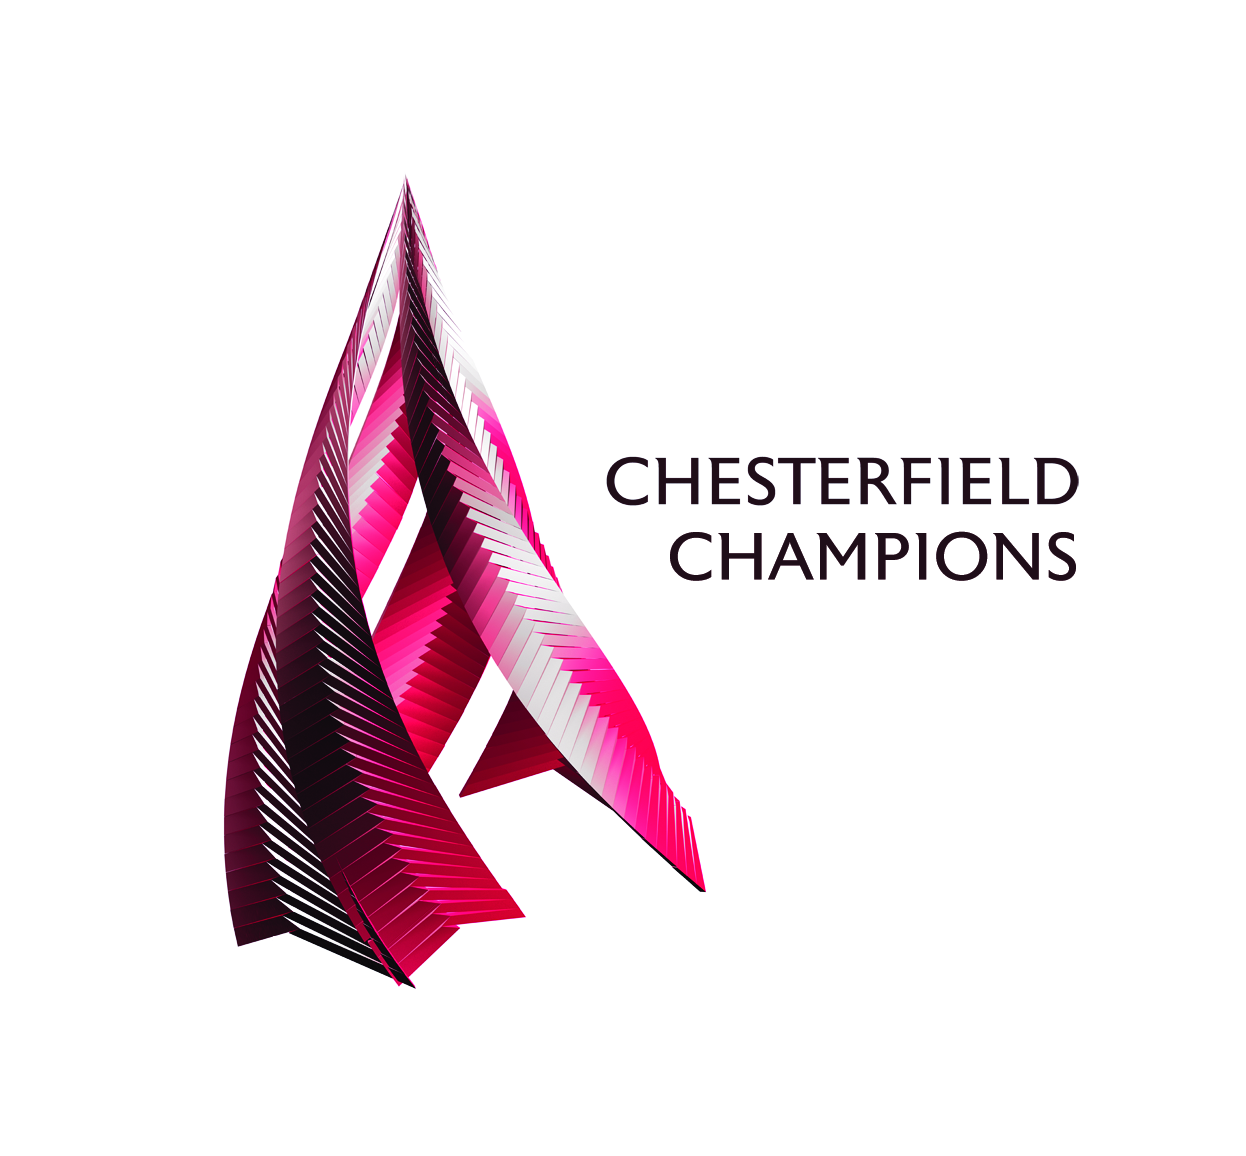 Chesterfield Champions link